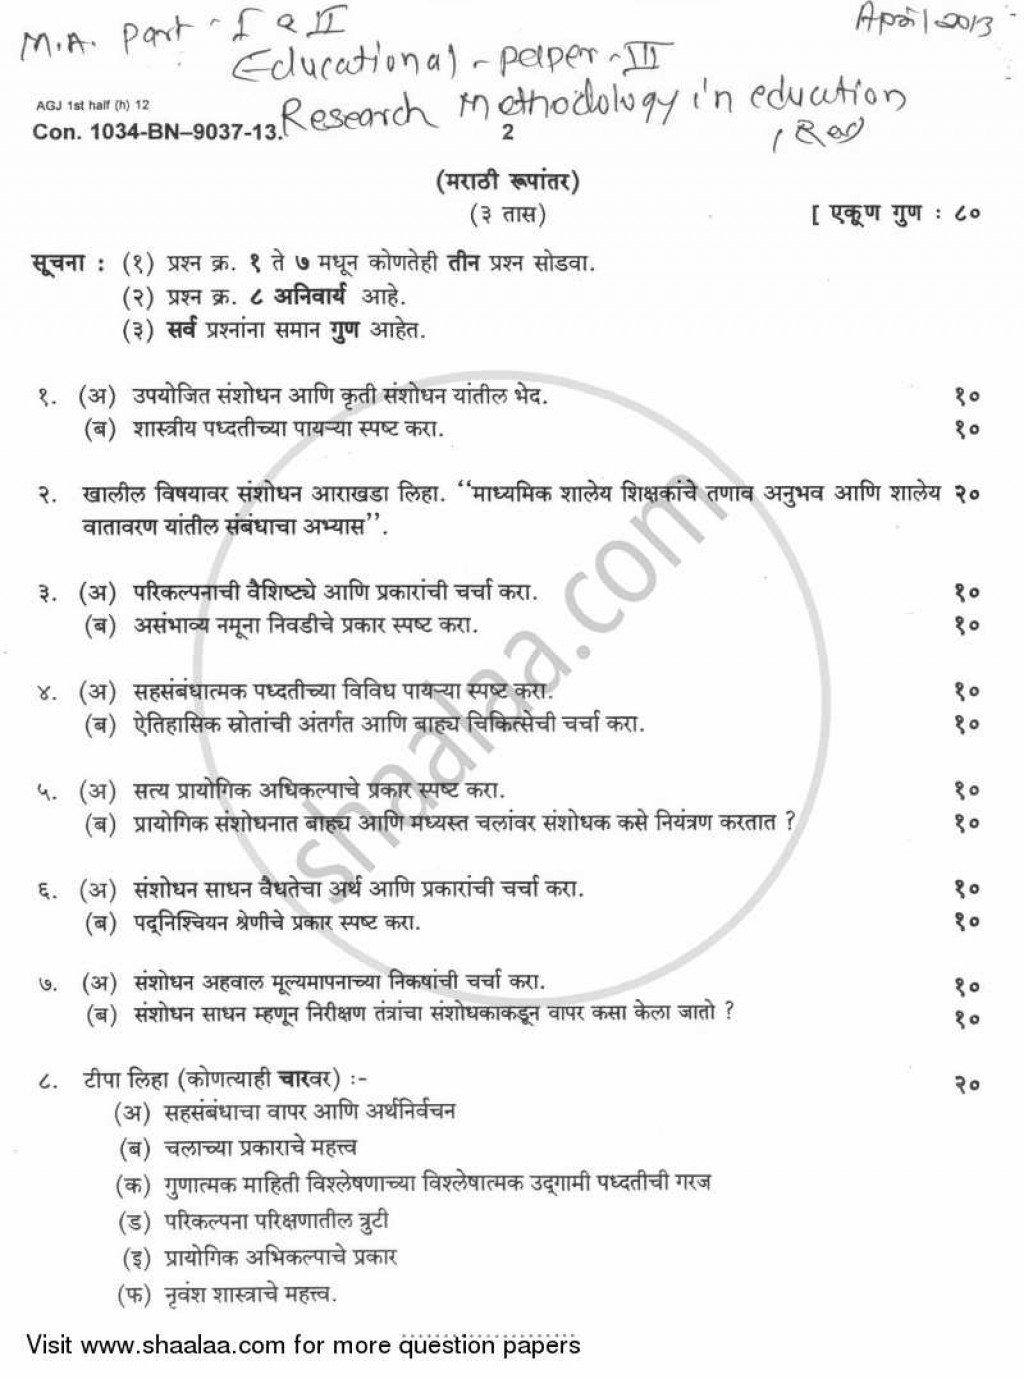 016 University Of Mumbai Master Ma Research Methodology Education Yearly Pattern Part 2012 2773731d8b9ed4a82aab006785367985a Paper Example Beautiful In Pdf Ppt Science Large